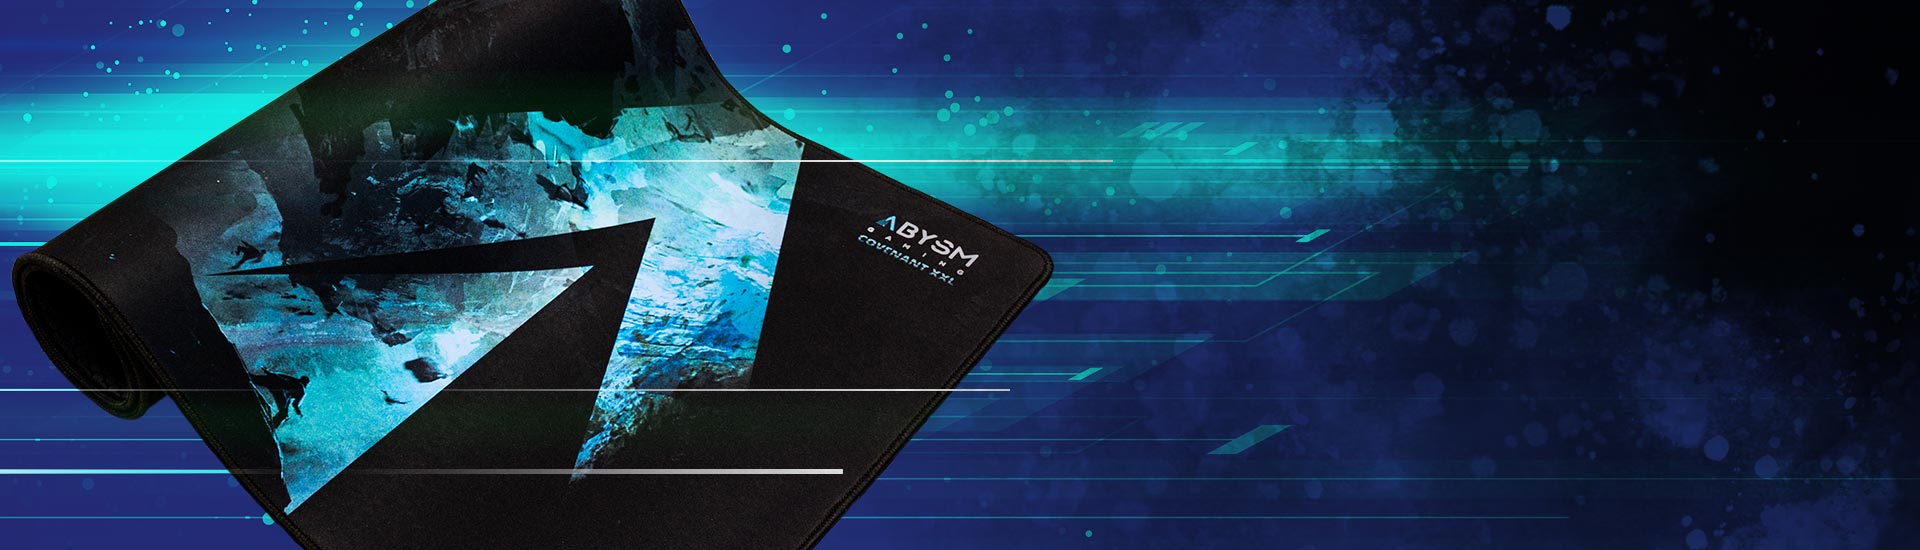 abysm-MousePad- Covenant XXL